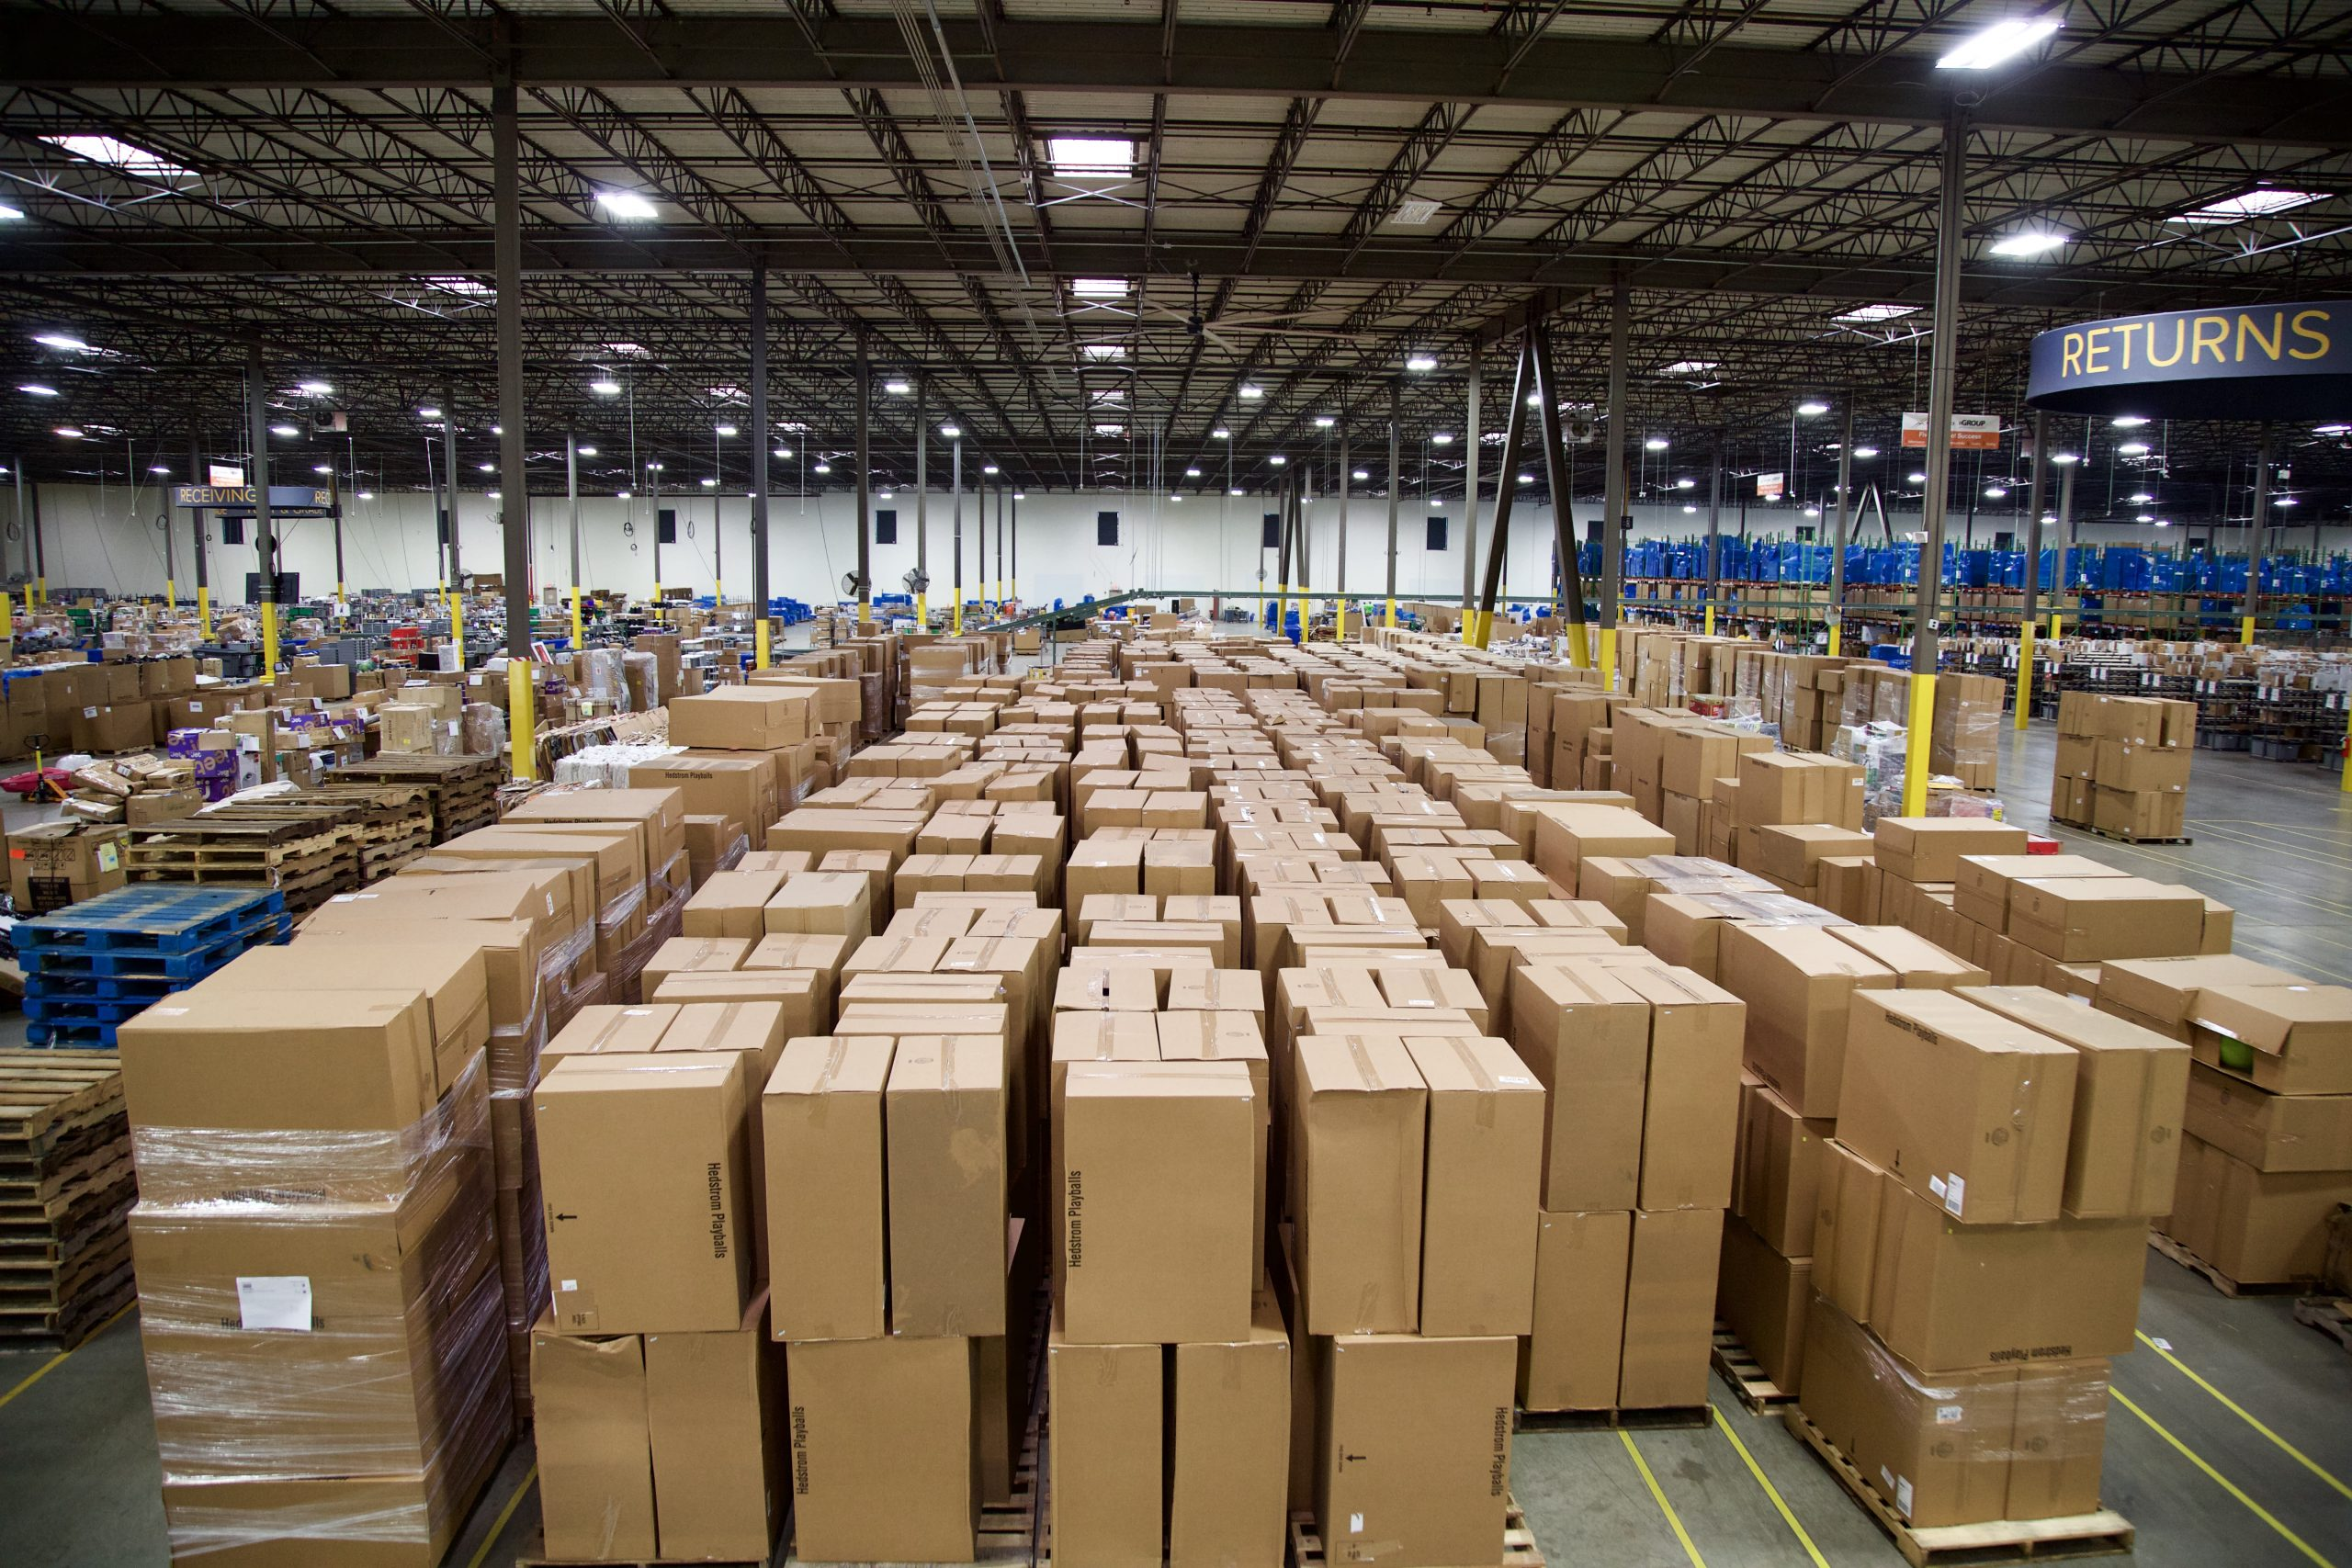 U.S. may need another 1 billion square feet of warehouse space by 2025